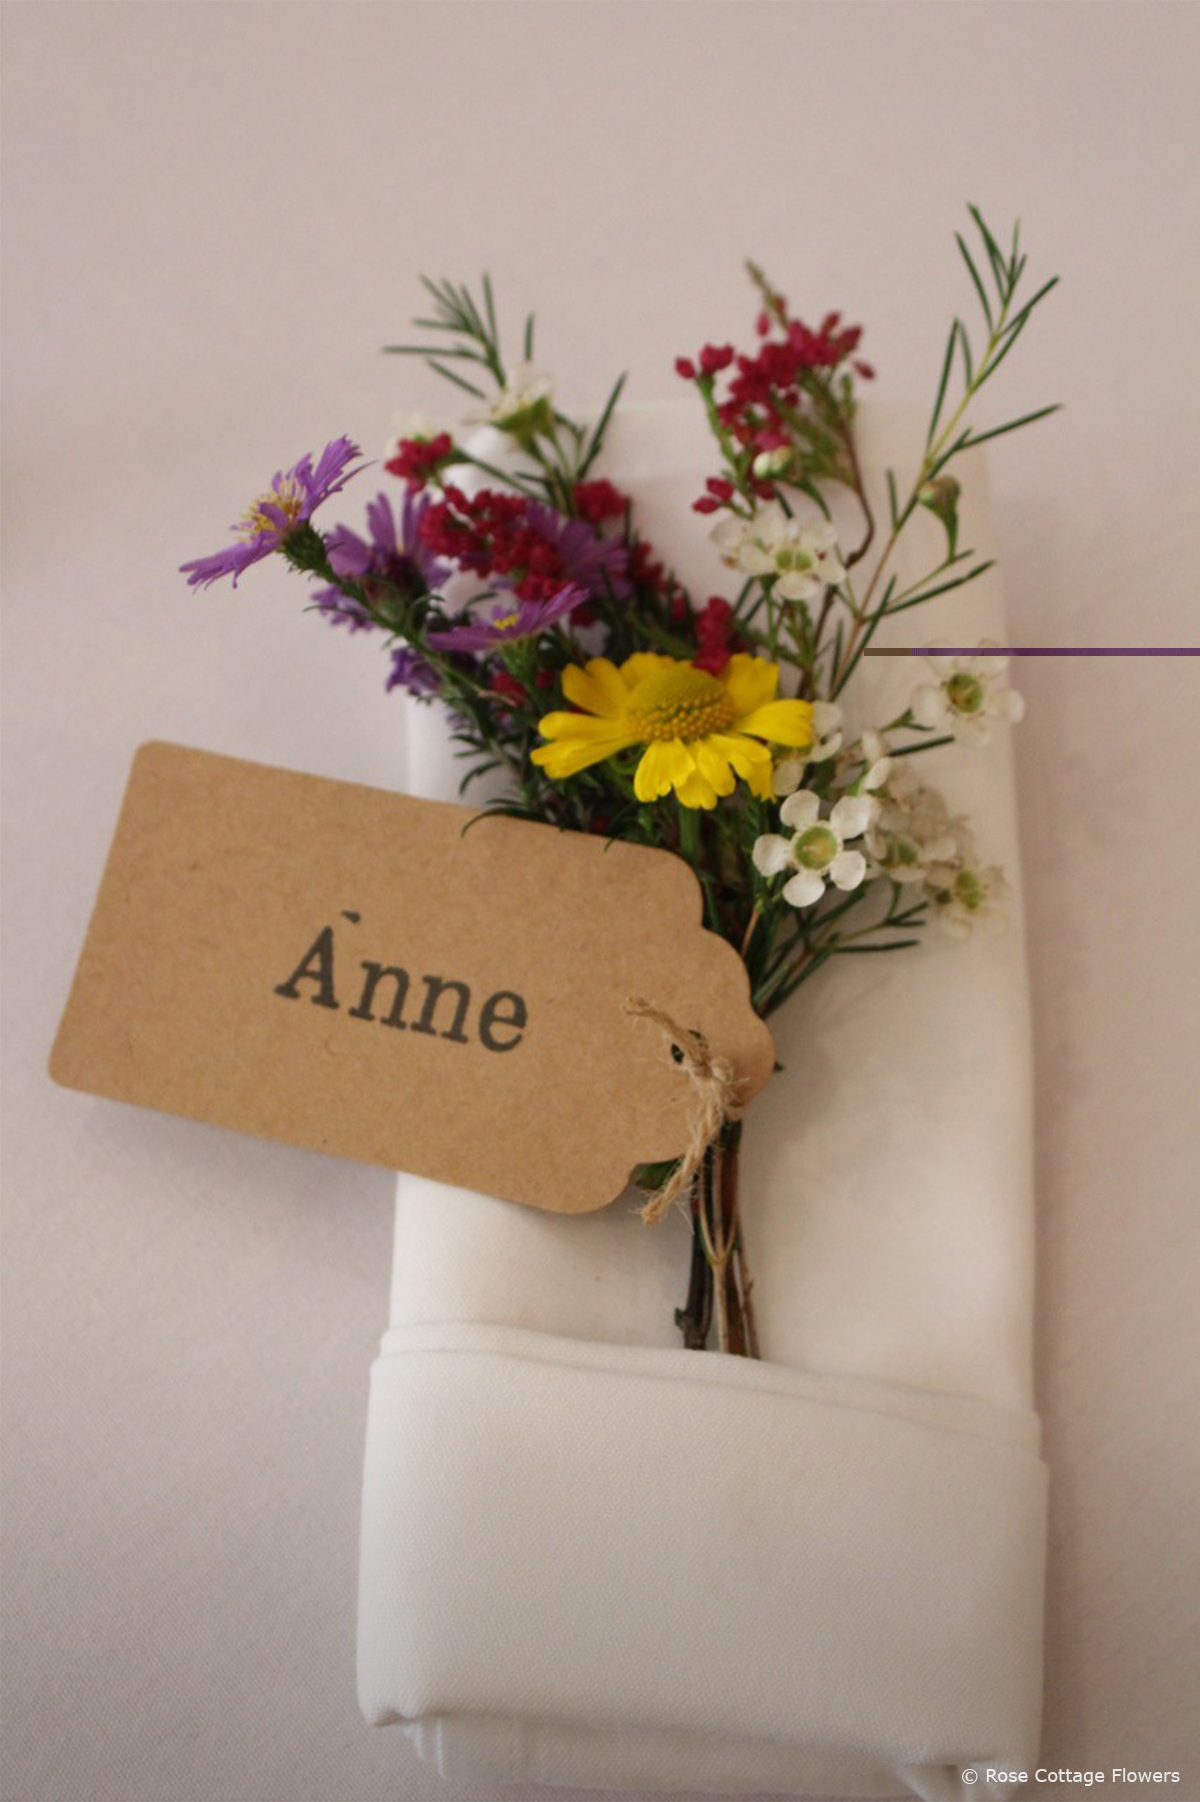 10 of our Favourite Wedding Favours 2016 - Buttonhole